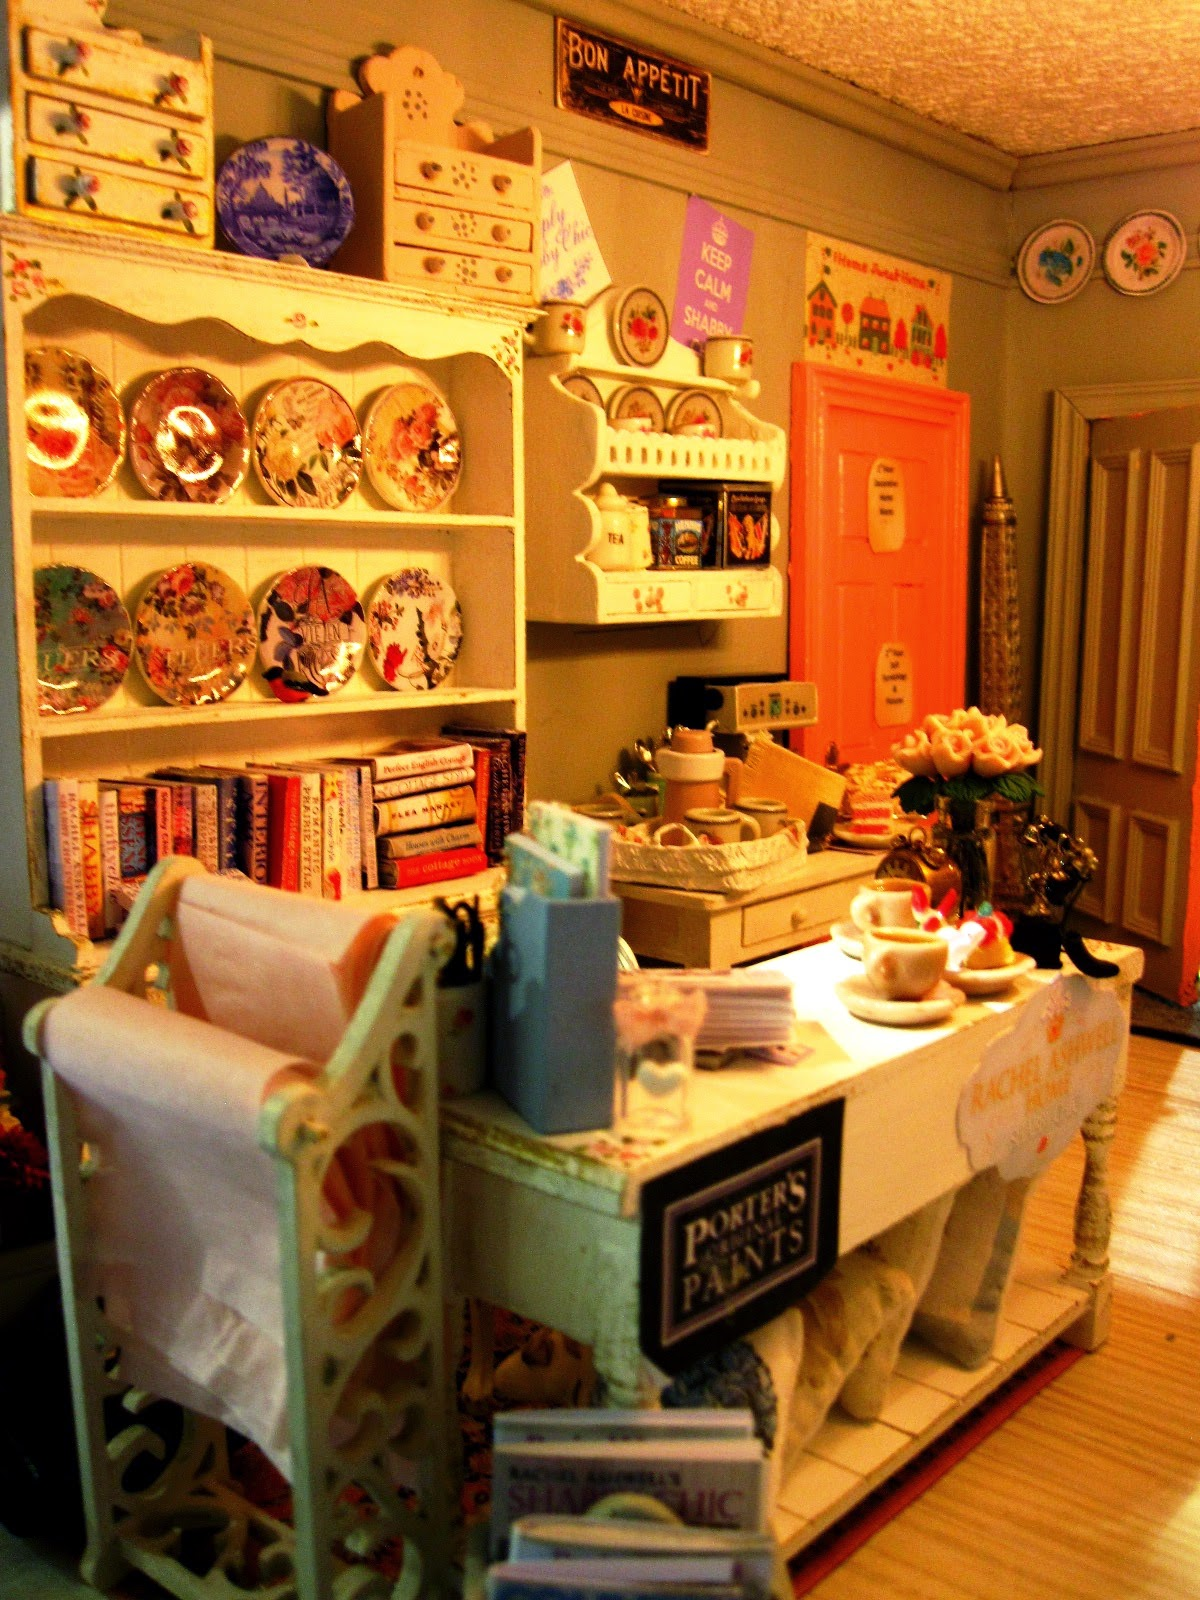 Close up view of a modern shabby chic shop, showing the counter area with plate racks behind it.